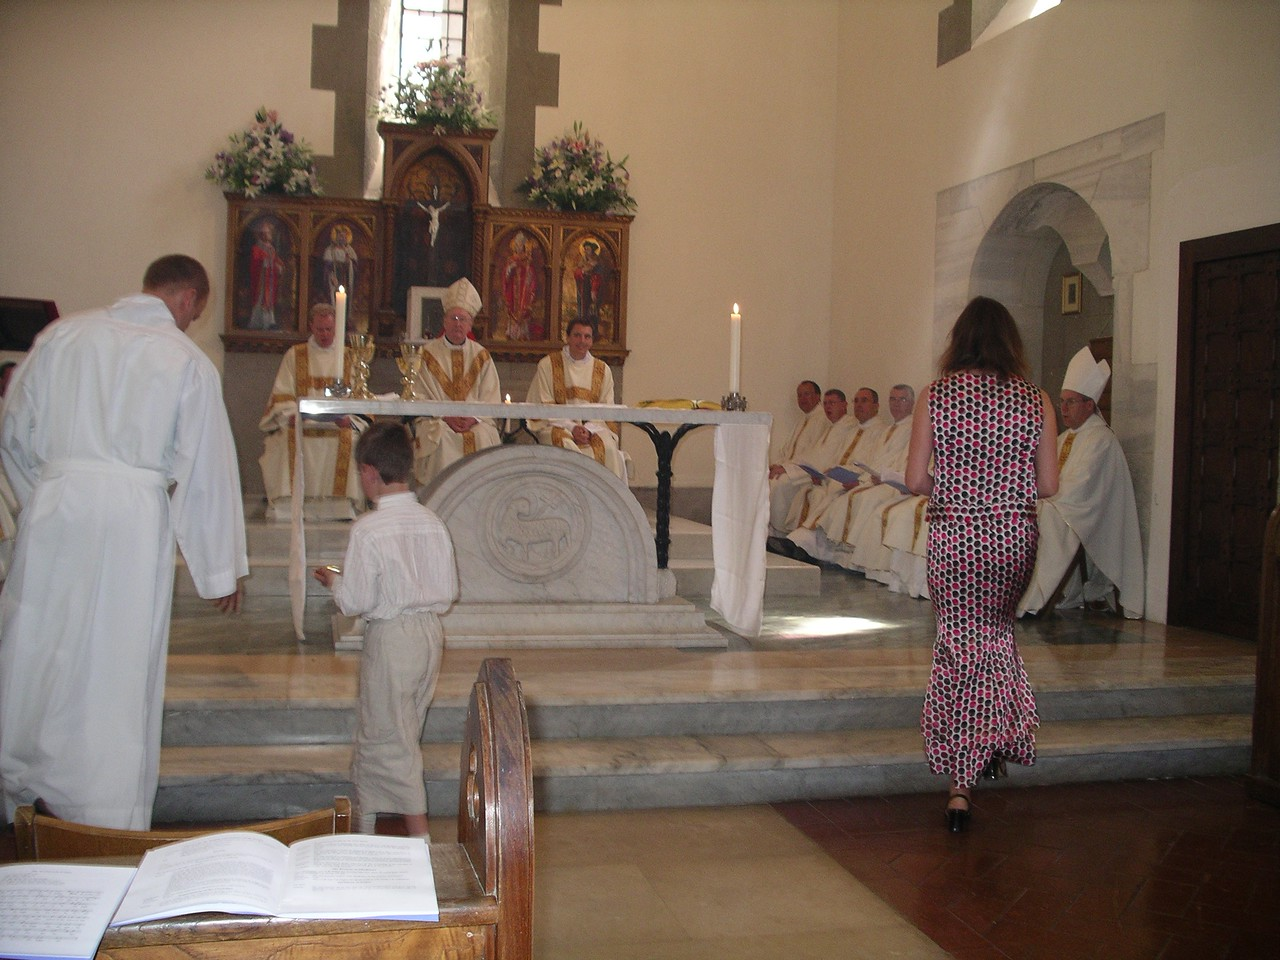 Offertory procession